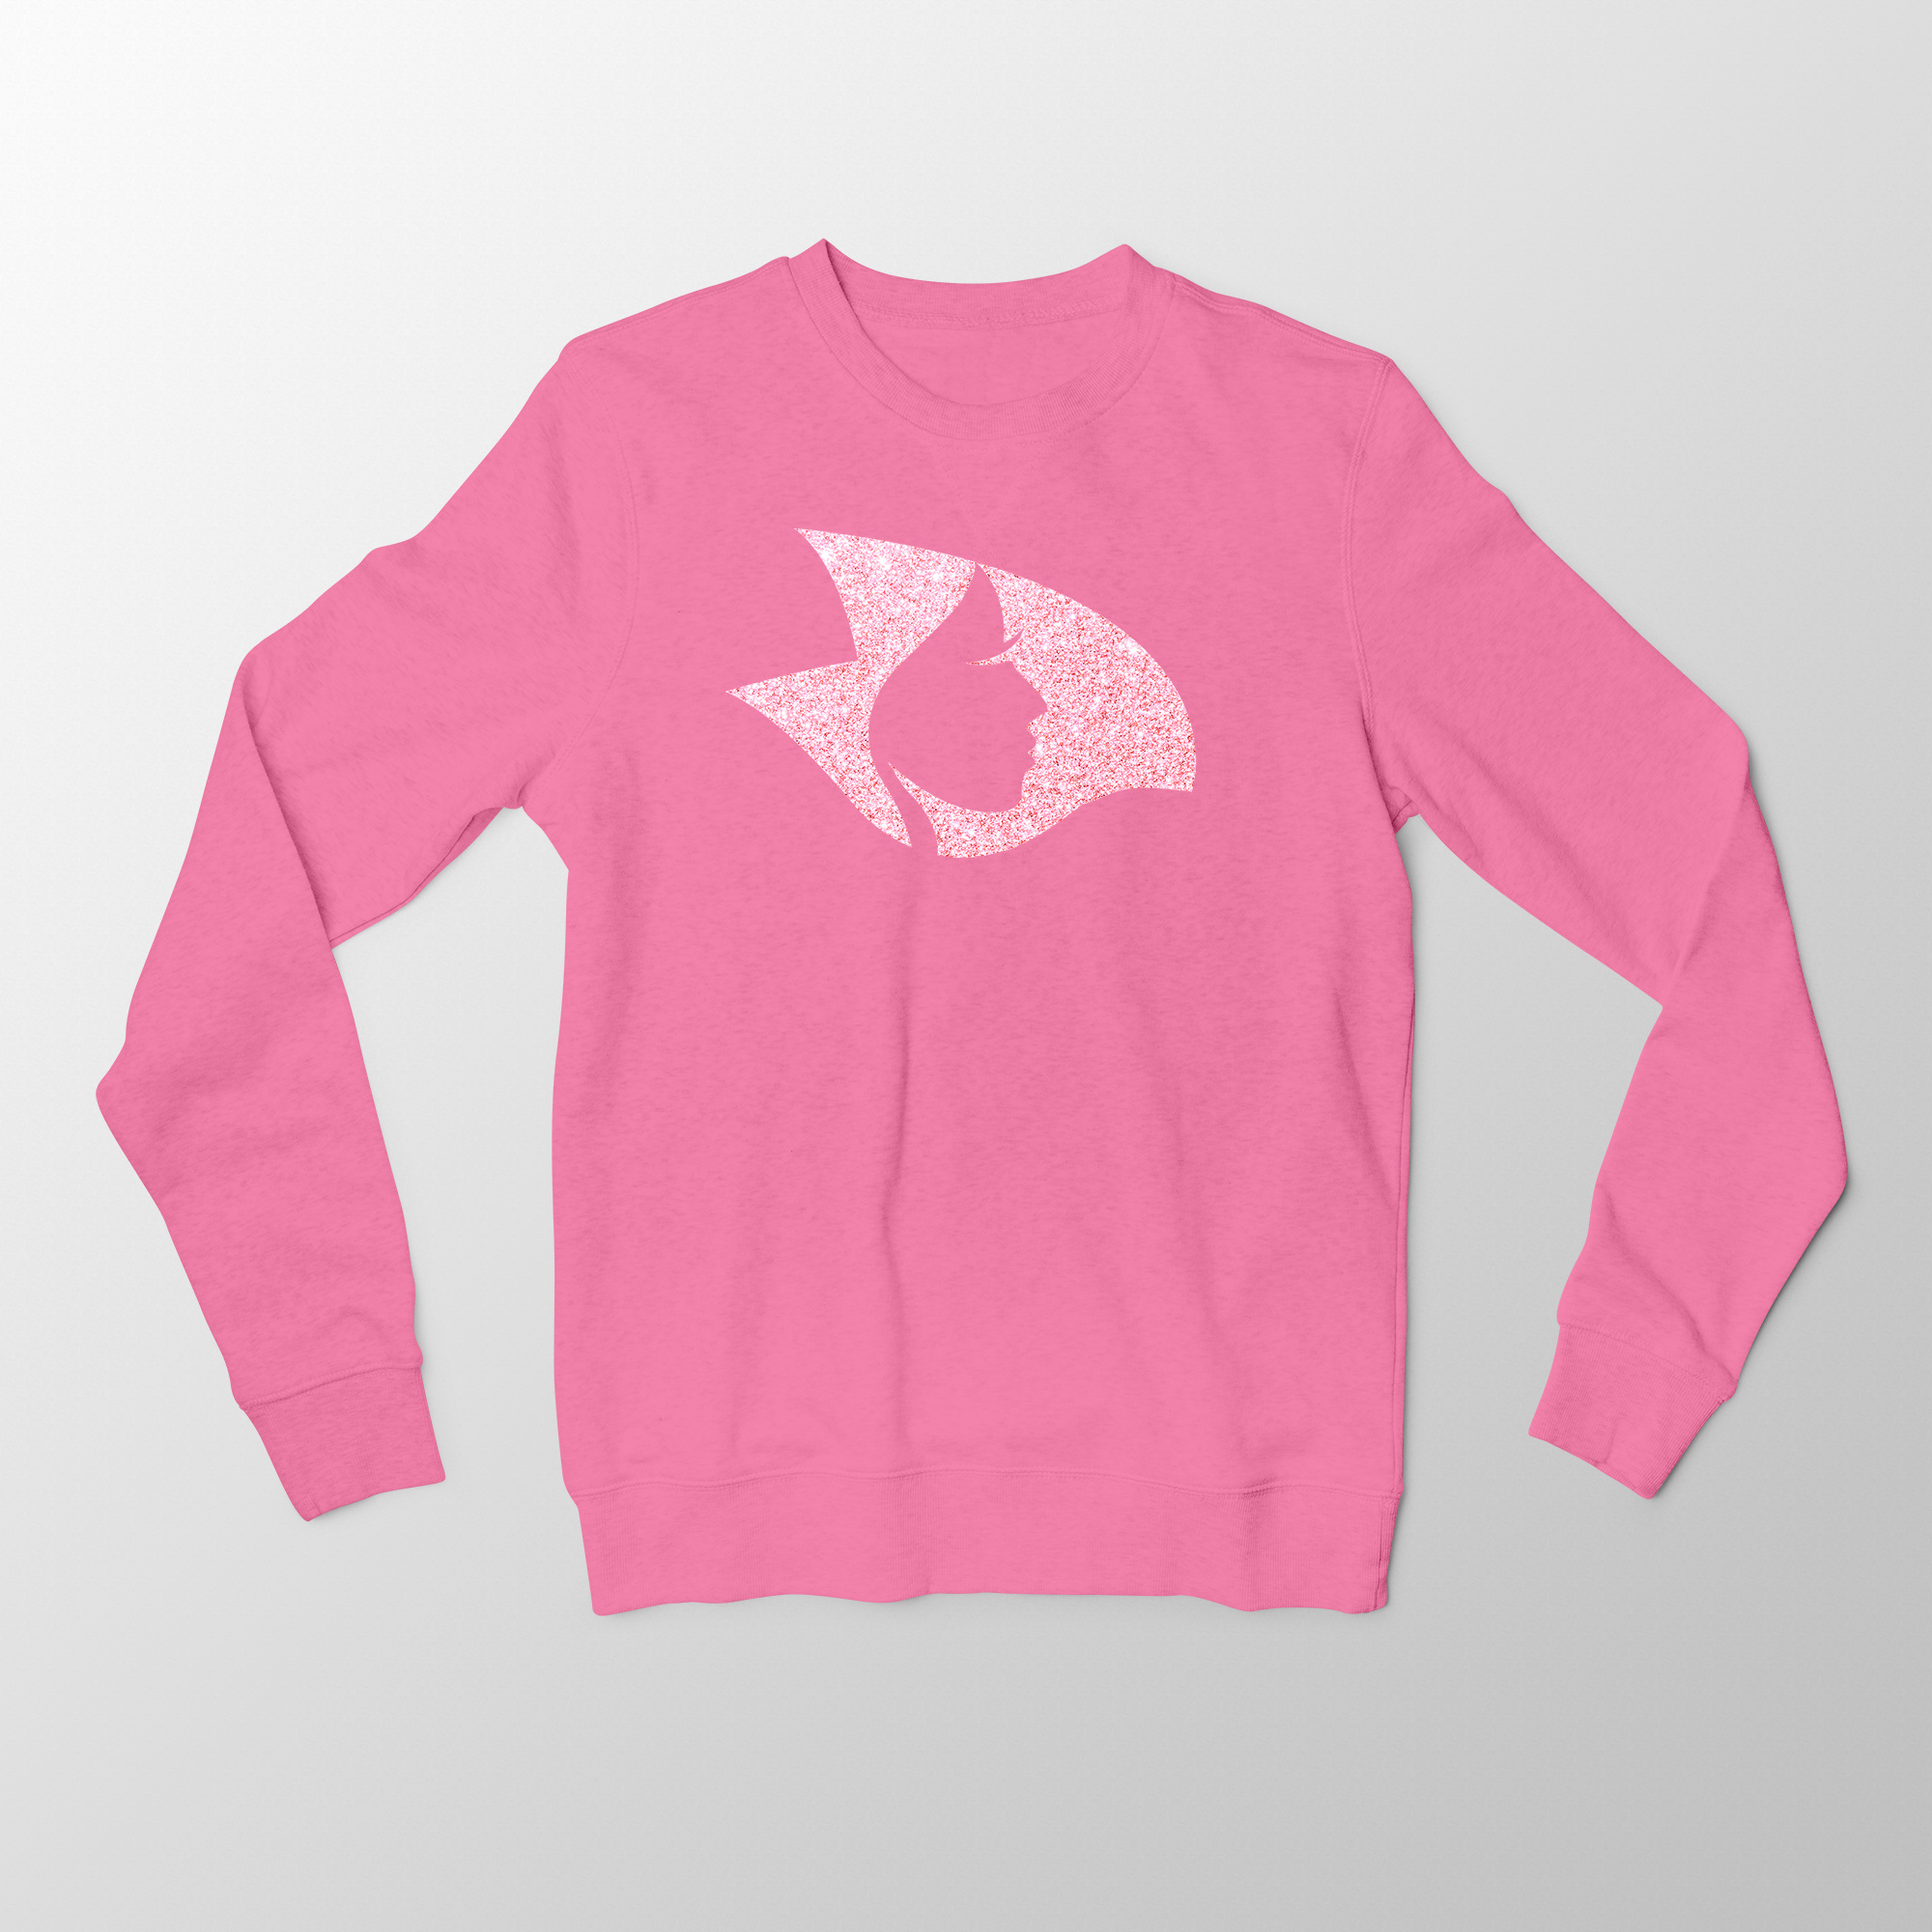 Pink Crewneck Sweatshirt w/ Pink Crystalline Radical Head